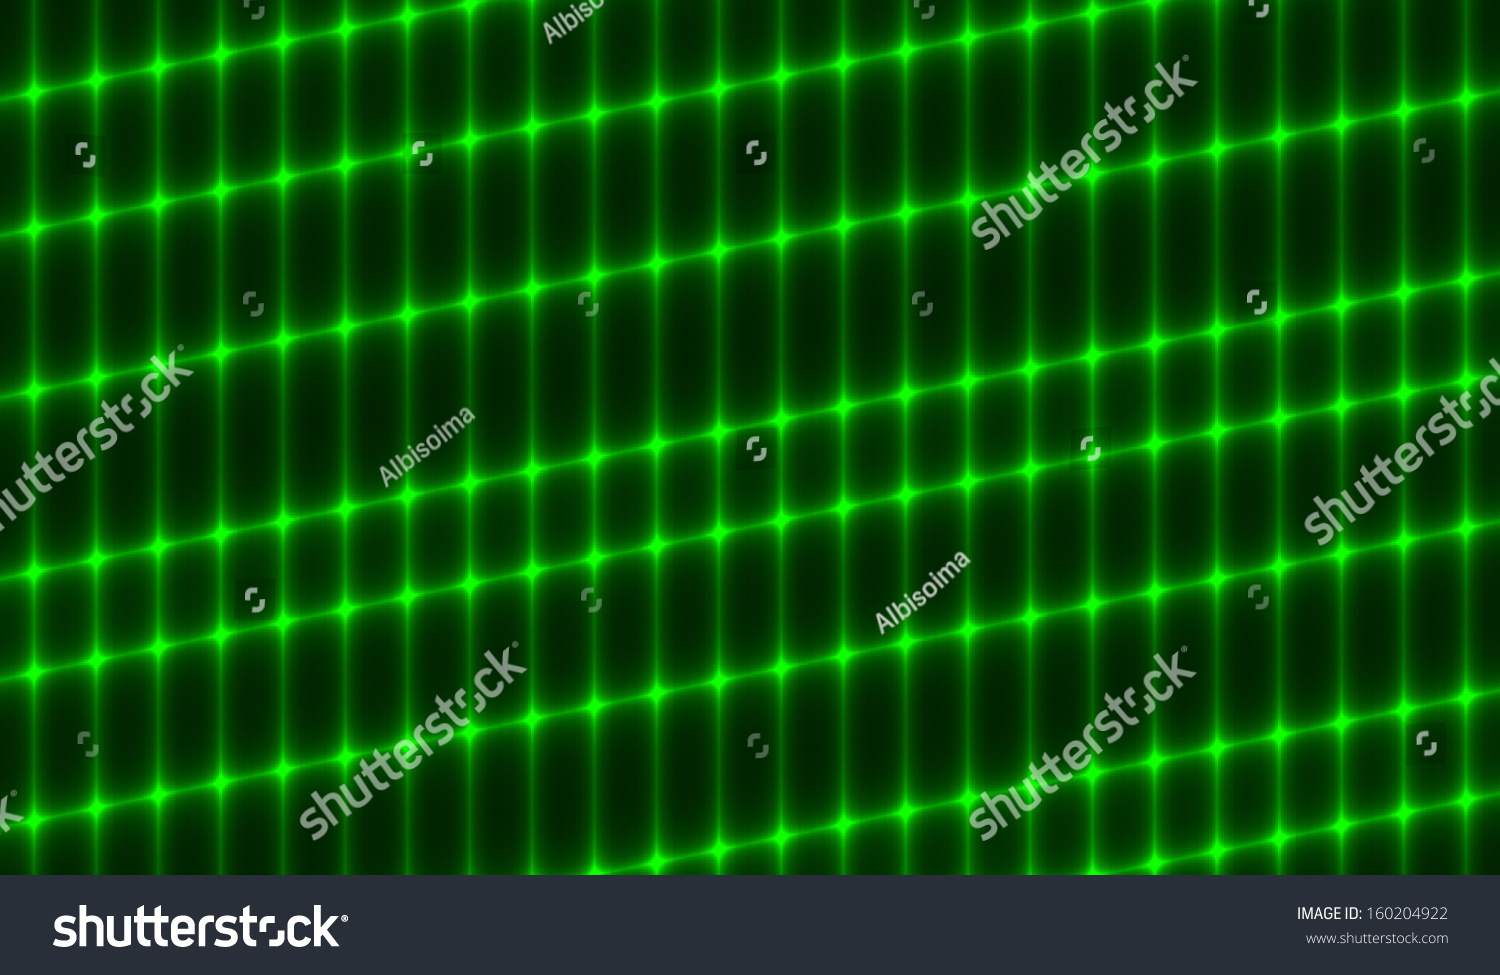 Neon Green Grid On Black Background Abstract Wallpaper